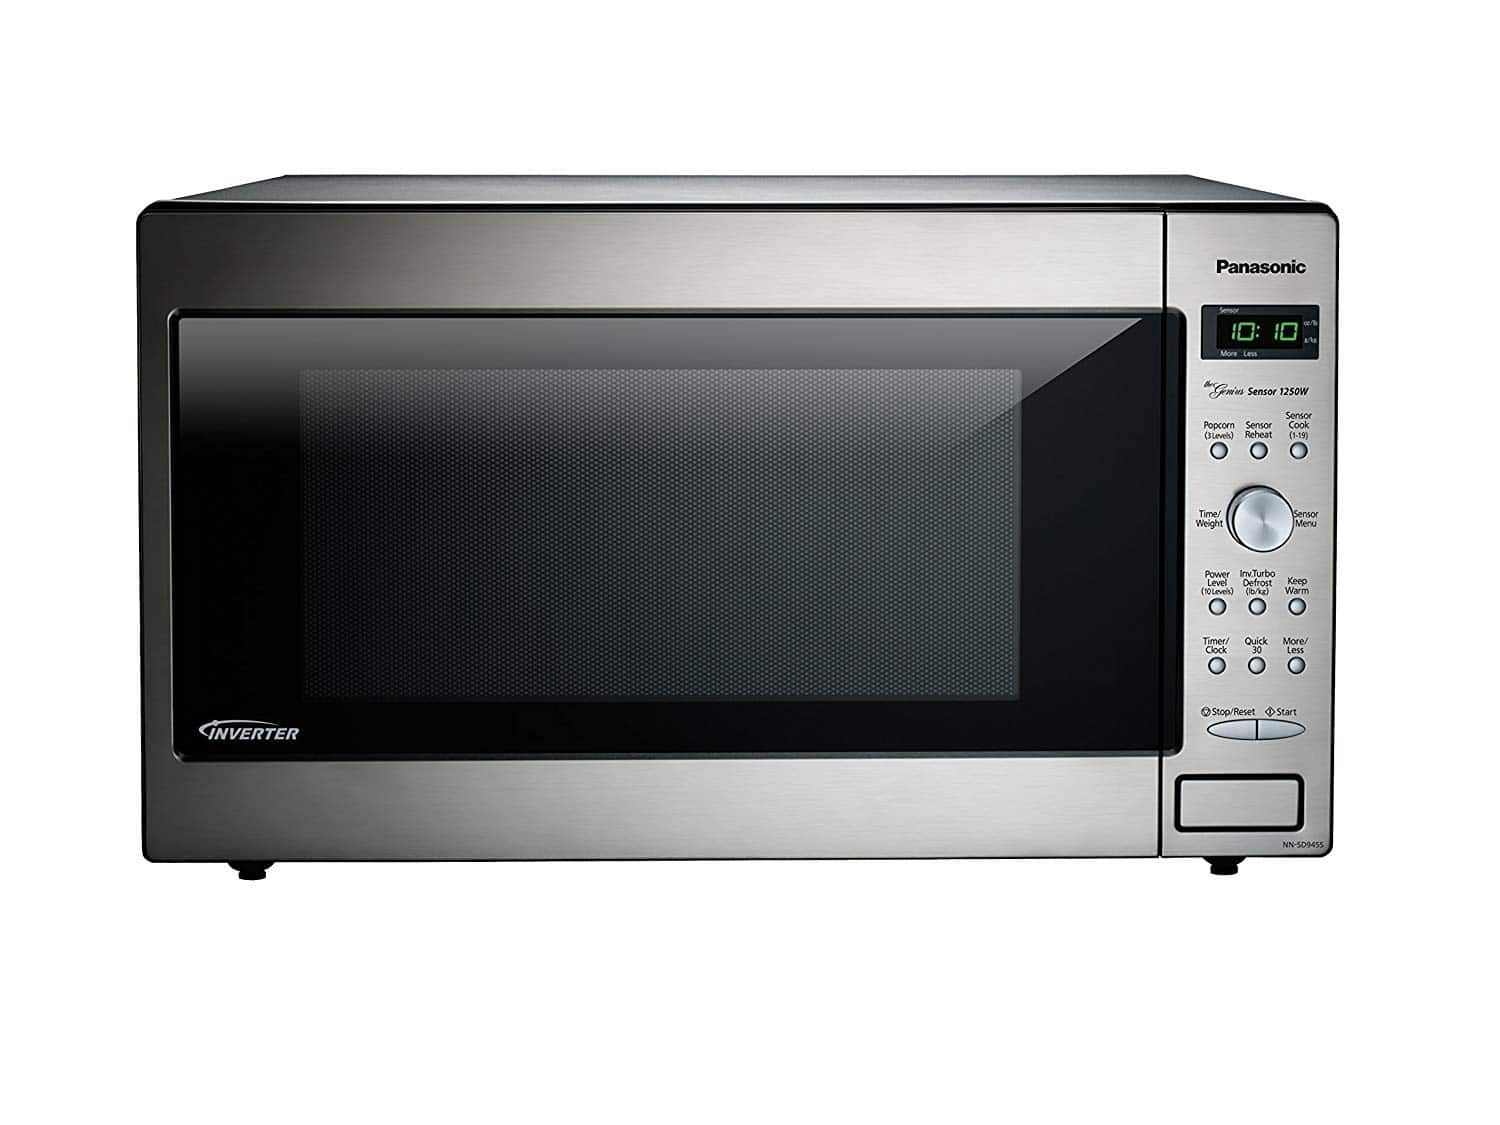 Top 9 Best Built In Microwaves In 2020 Hqreview Built In Microwave Panasonic Microwave Countertop Microwave Oven